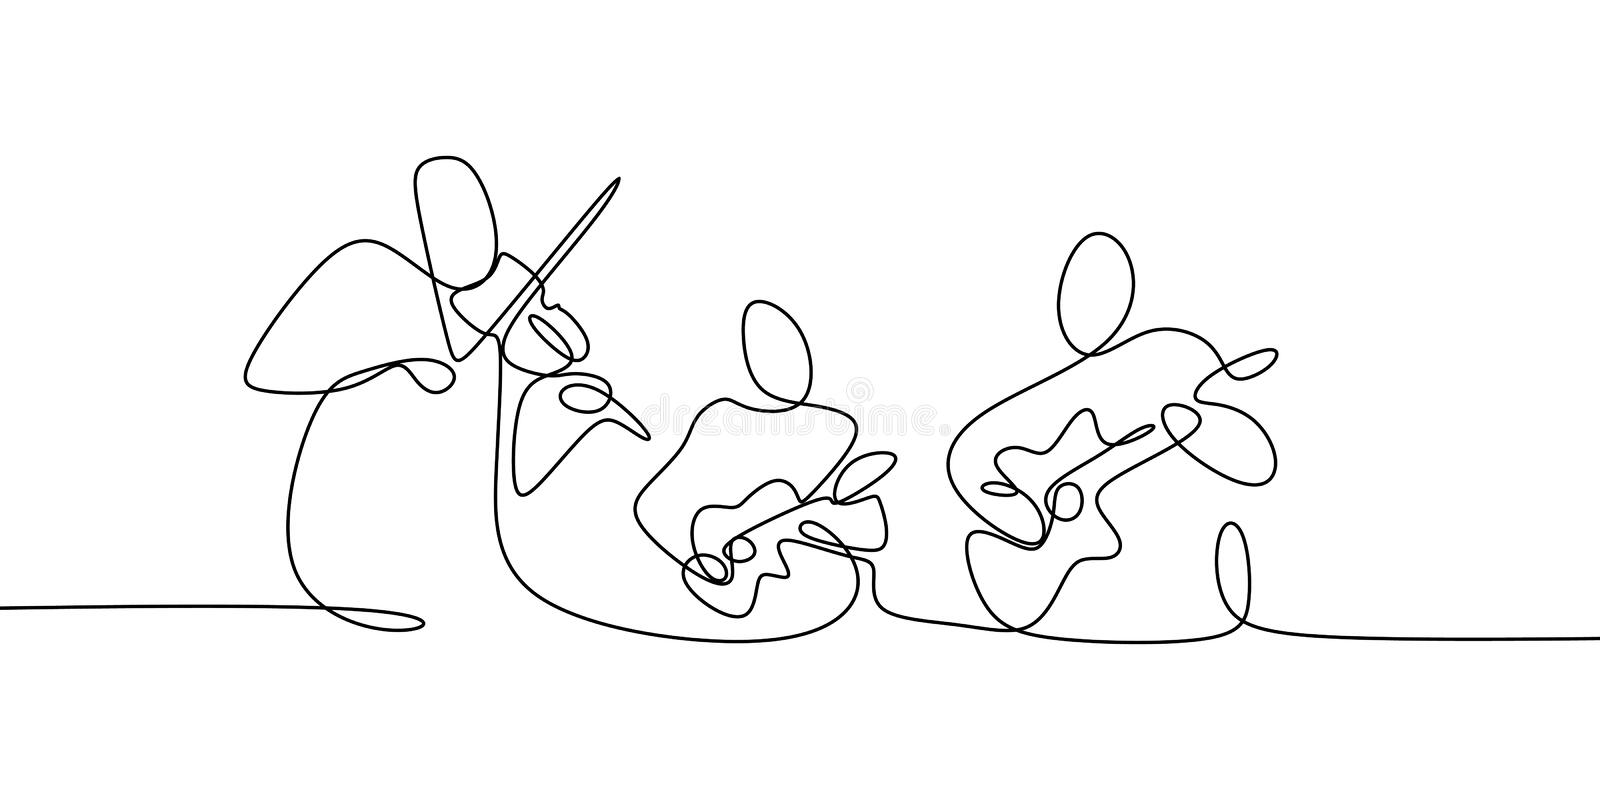 Music Festival Concert One Line Drawing. Continuous Single